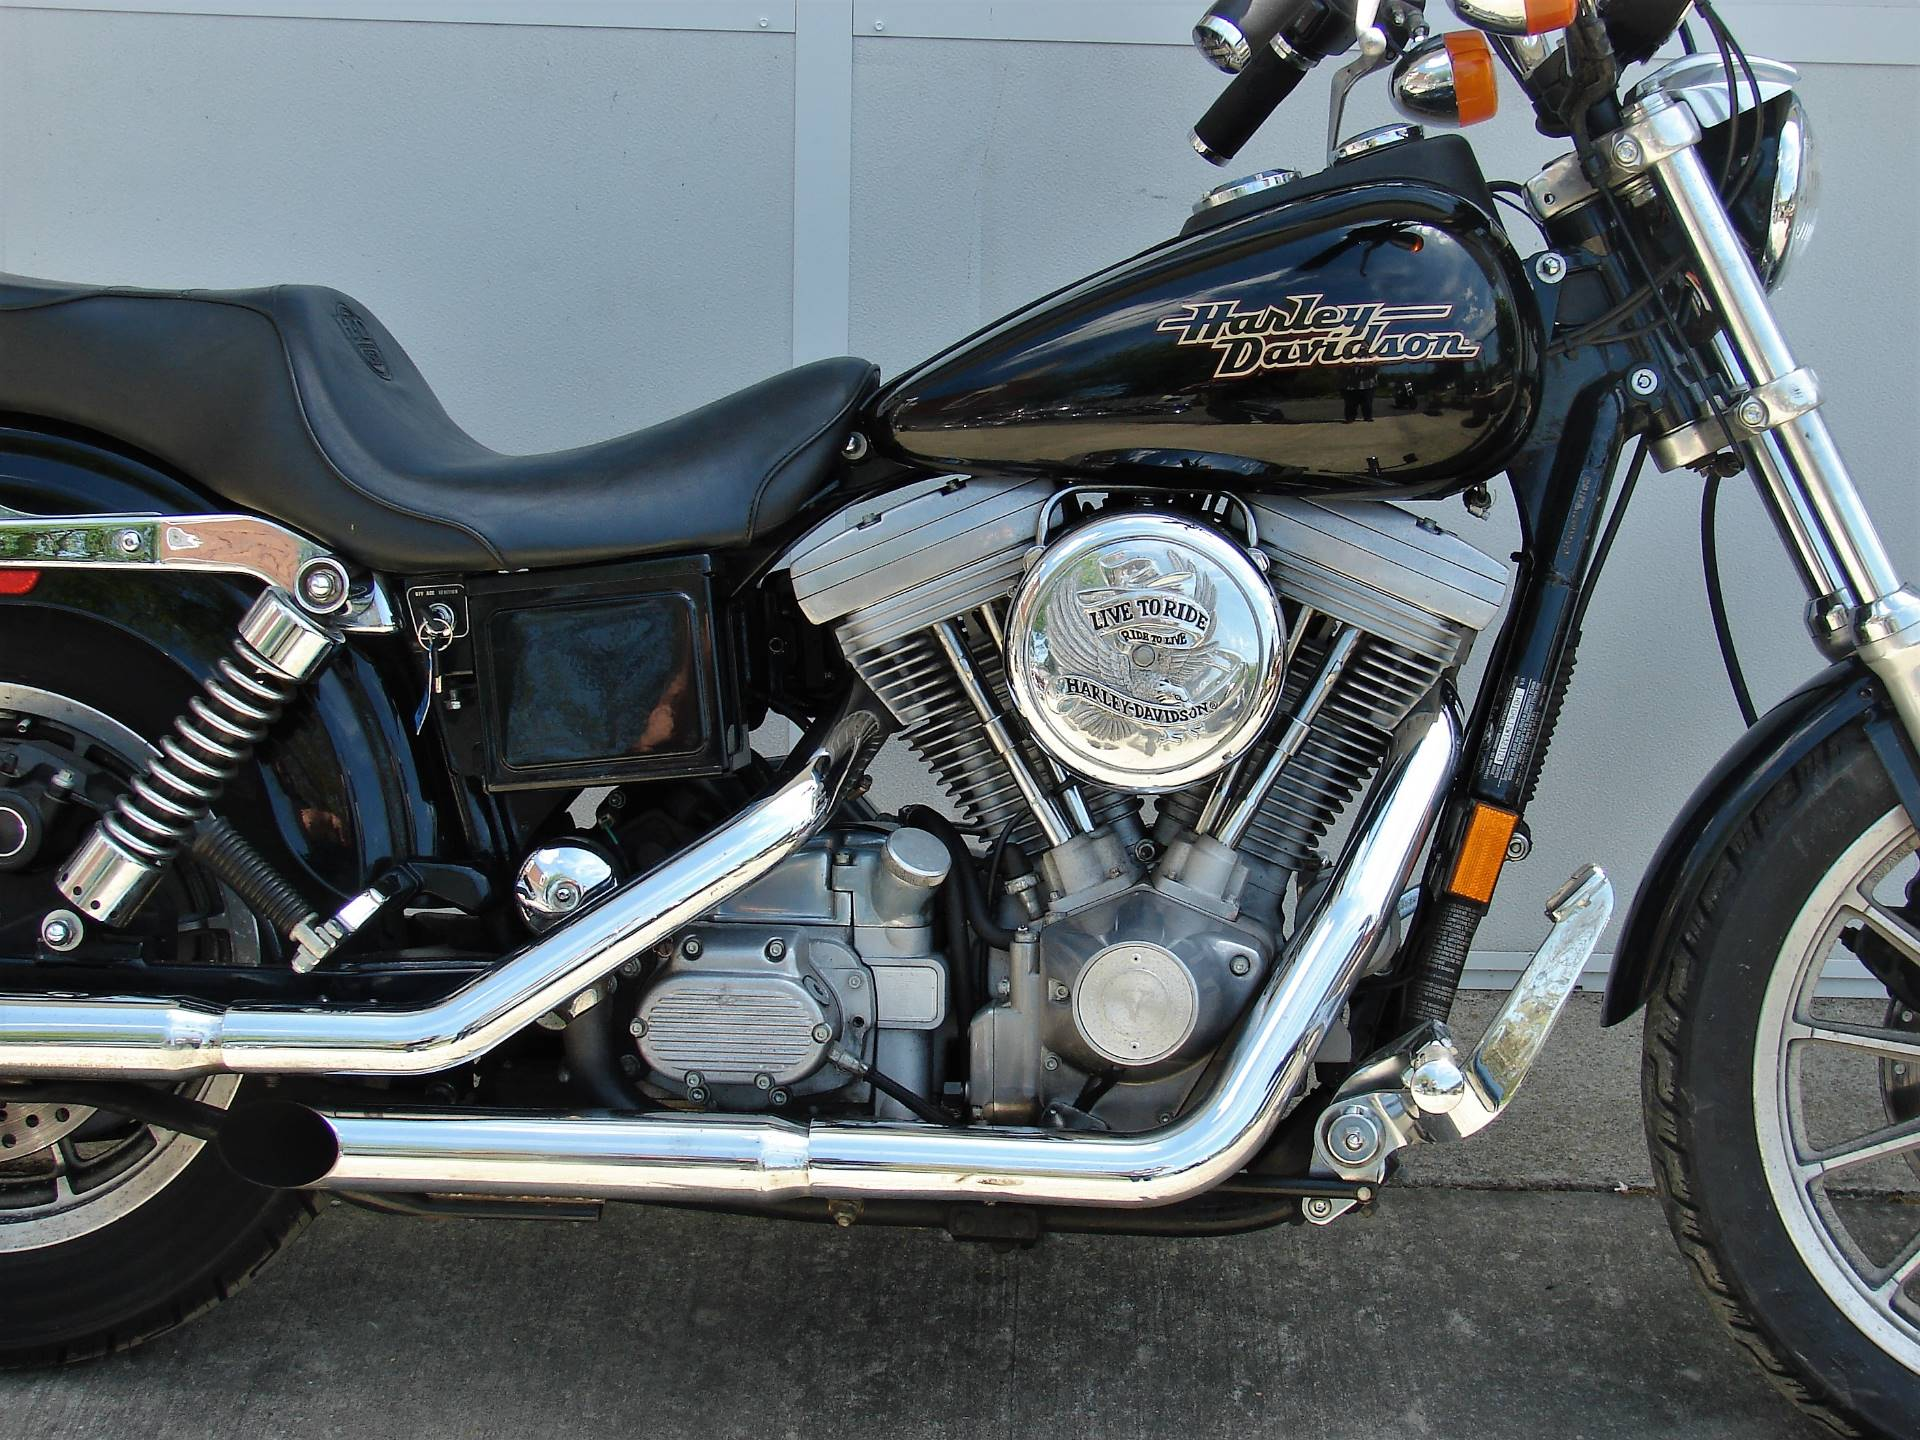 1998 Harley-Davidson Dyna Super Glide  (Black)  w/ Low Miles! in Williamstown, New Jersey - Photo 11